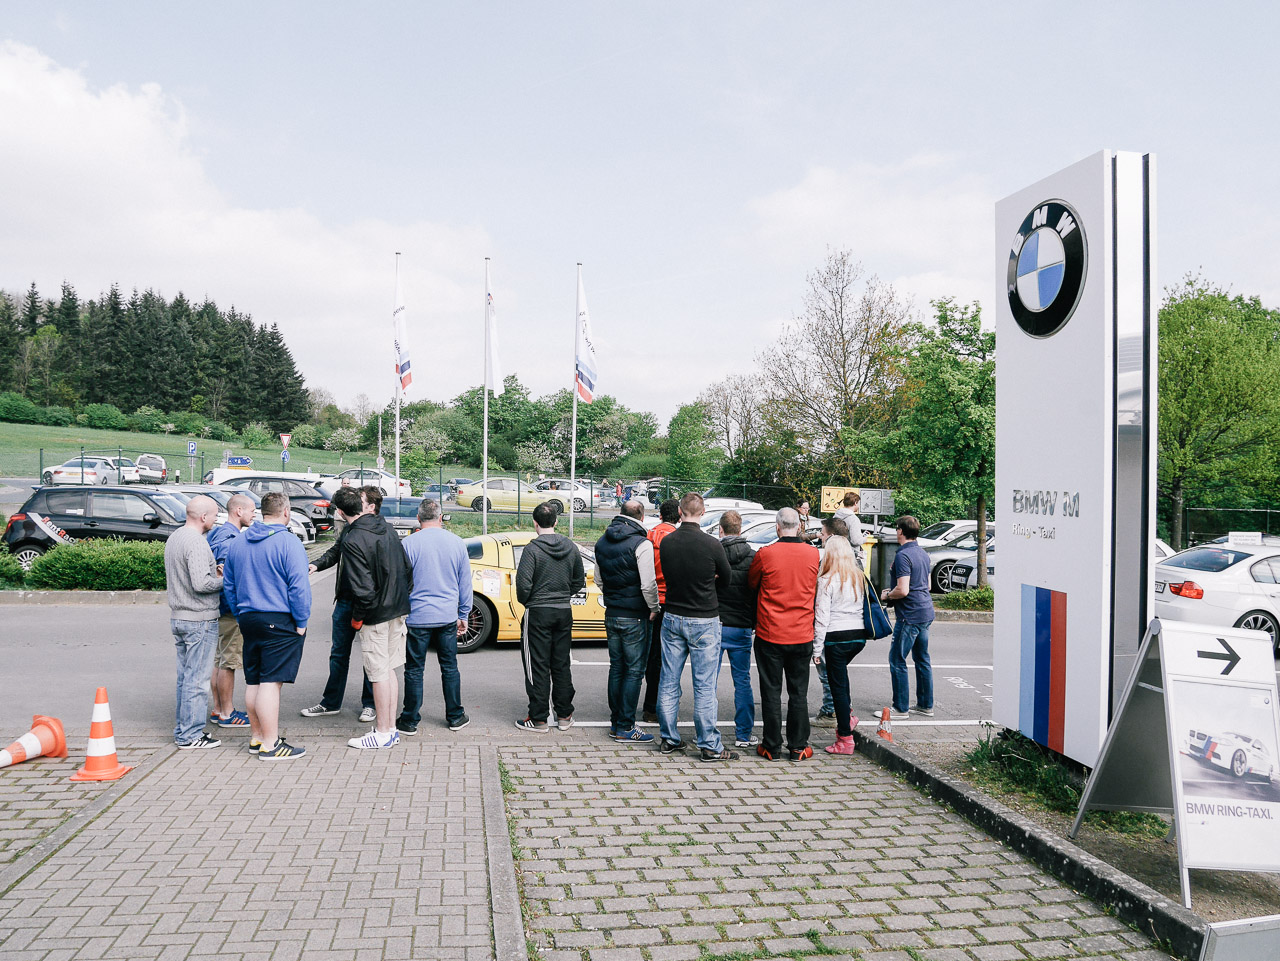 Trip to Germany & France【4】 – NürburgringでBMW Ring Taxiを体験